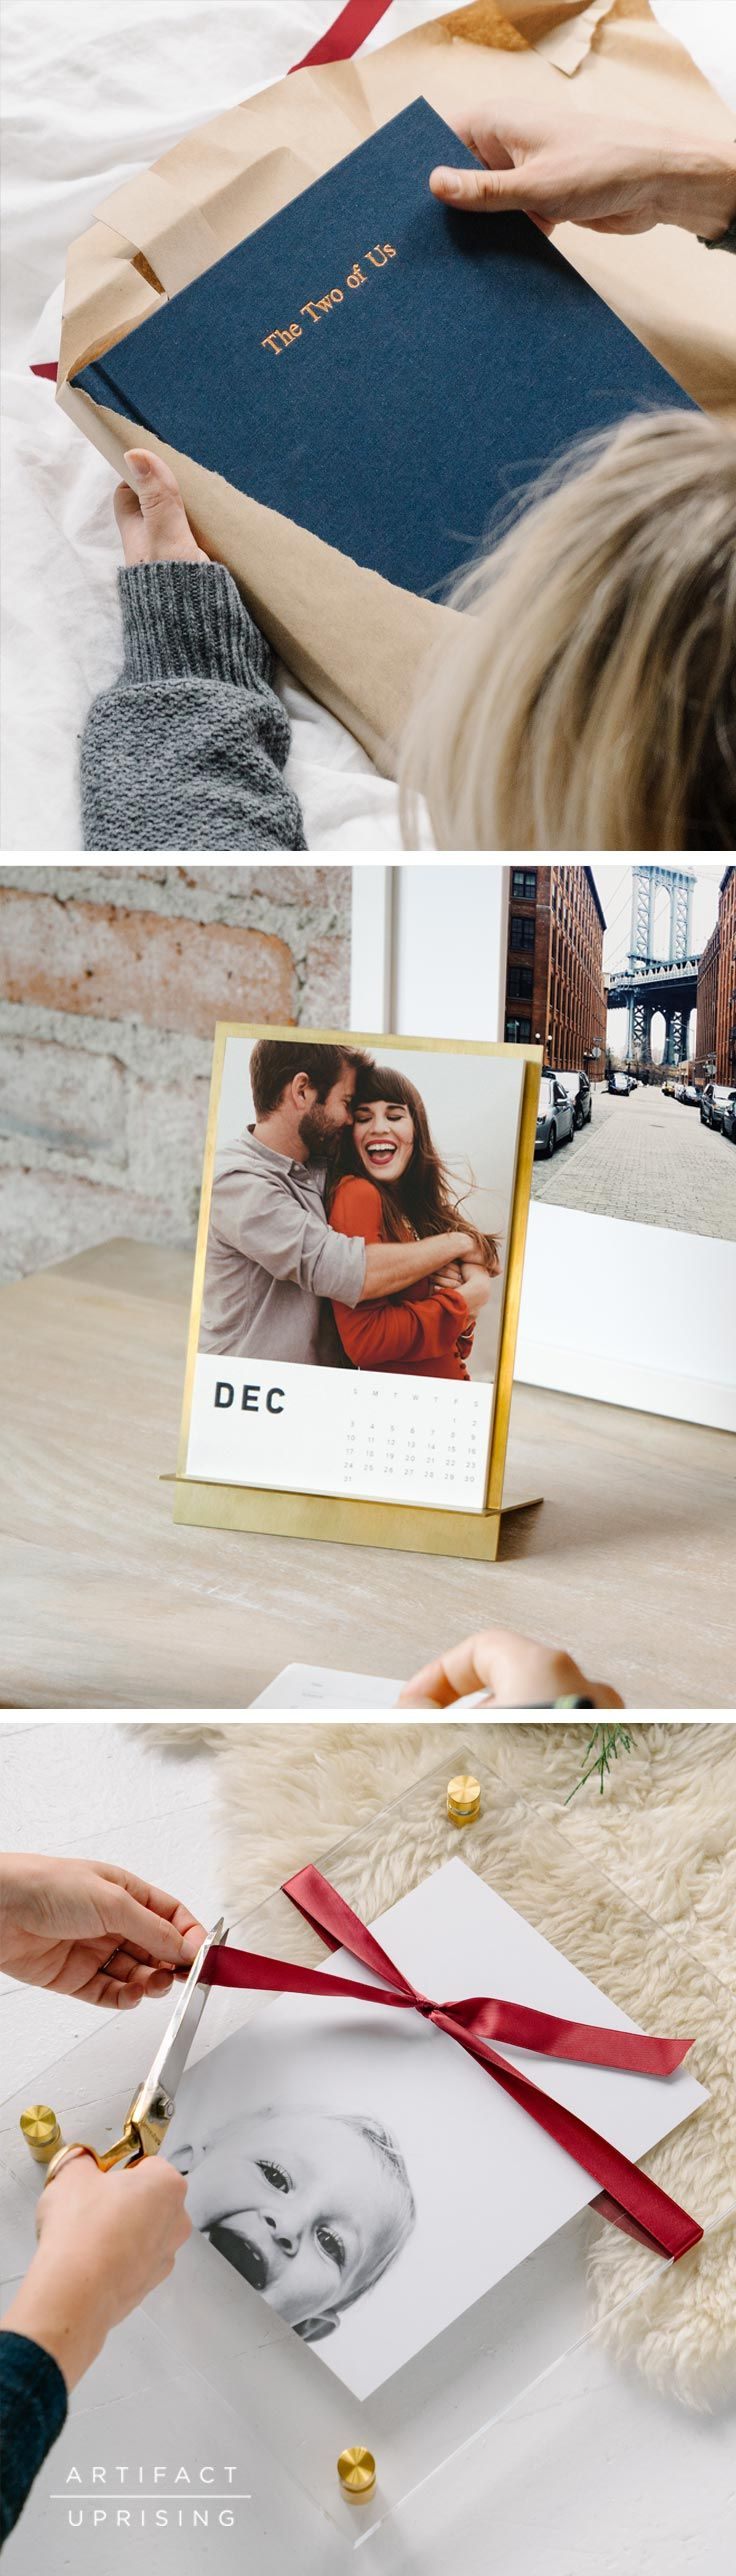 "File these under: ""Things that won't make the re-gift pile"". With personalized photo books, wall art and more from @artifactuprsng, say hello to the best holiday yet."